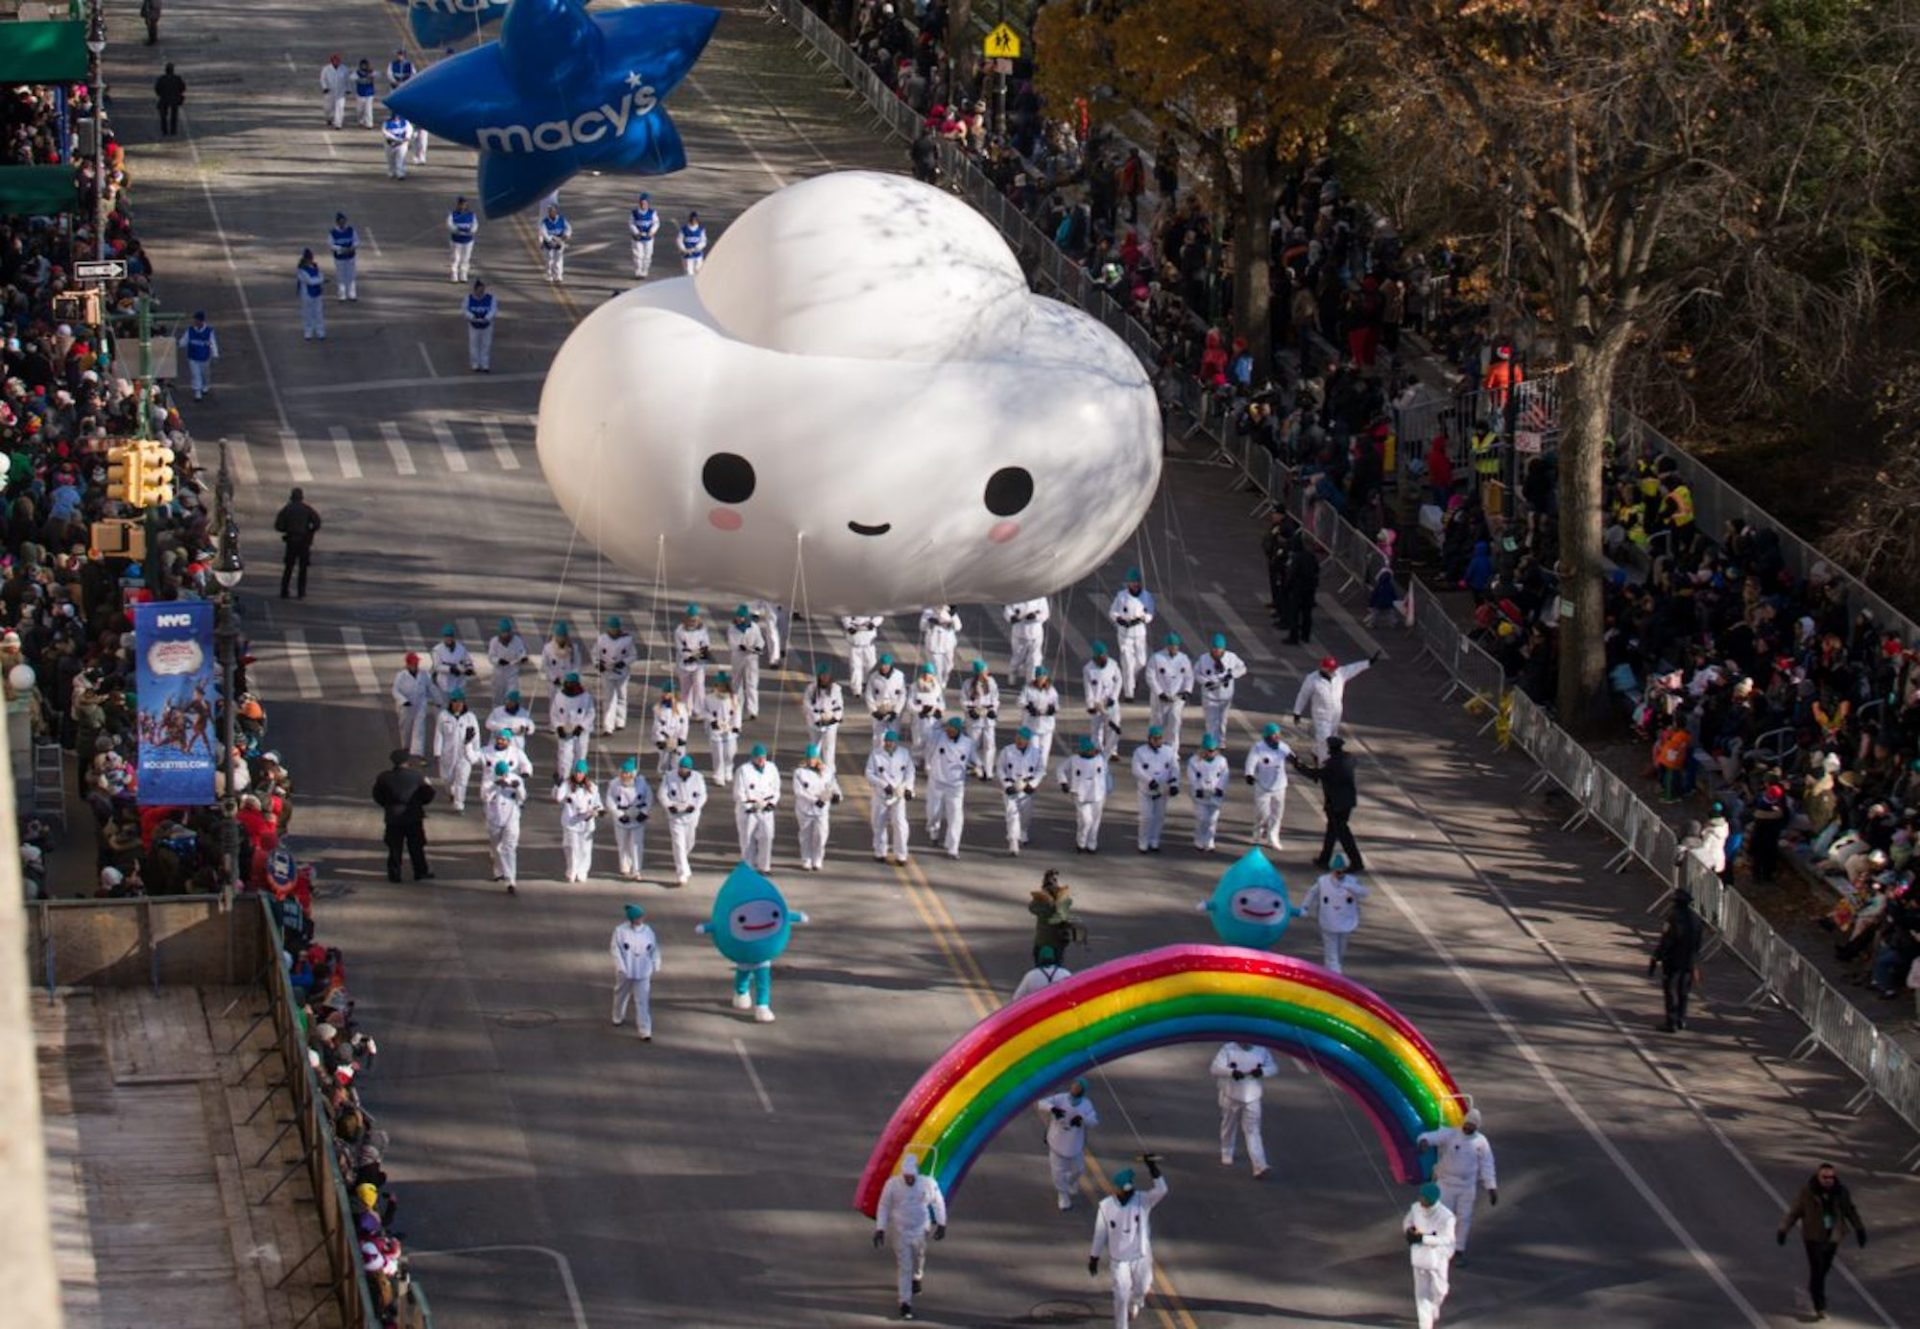 Little Cloud in Macy's Thanksgiving Day Parade!